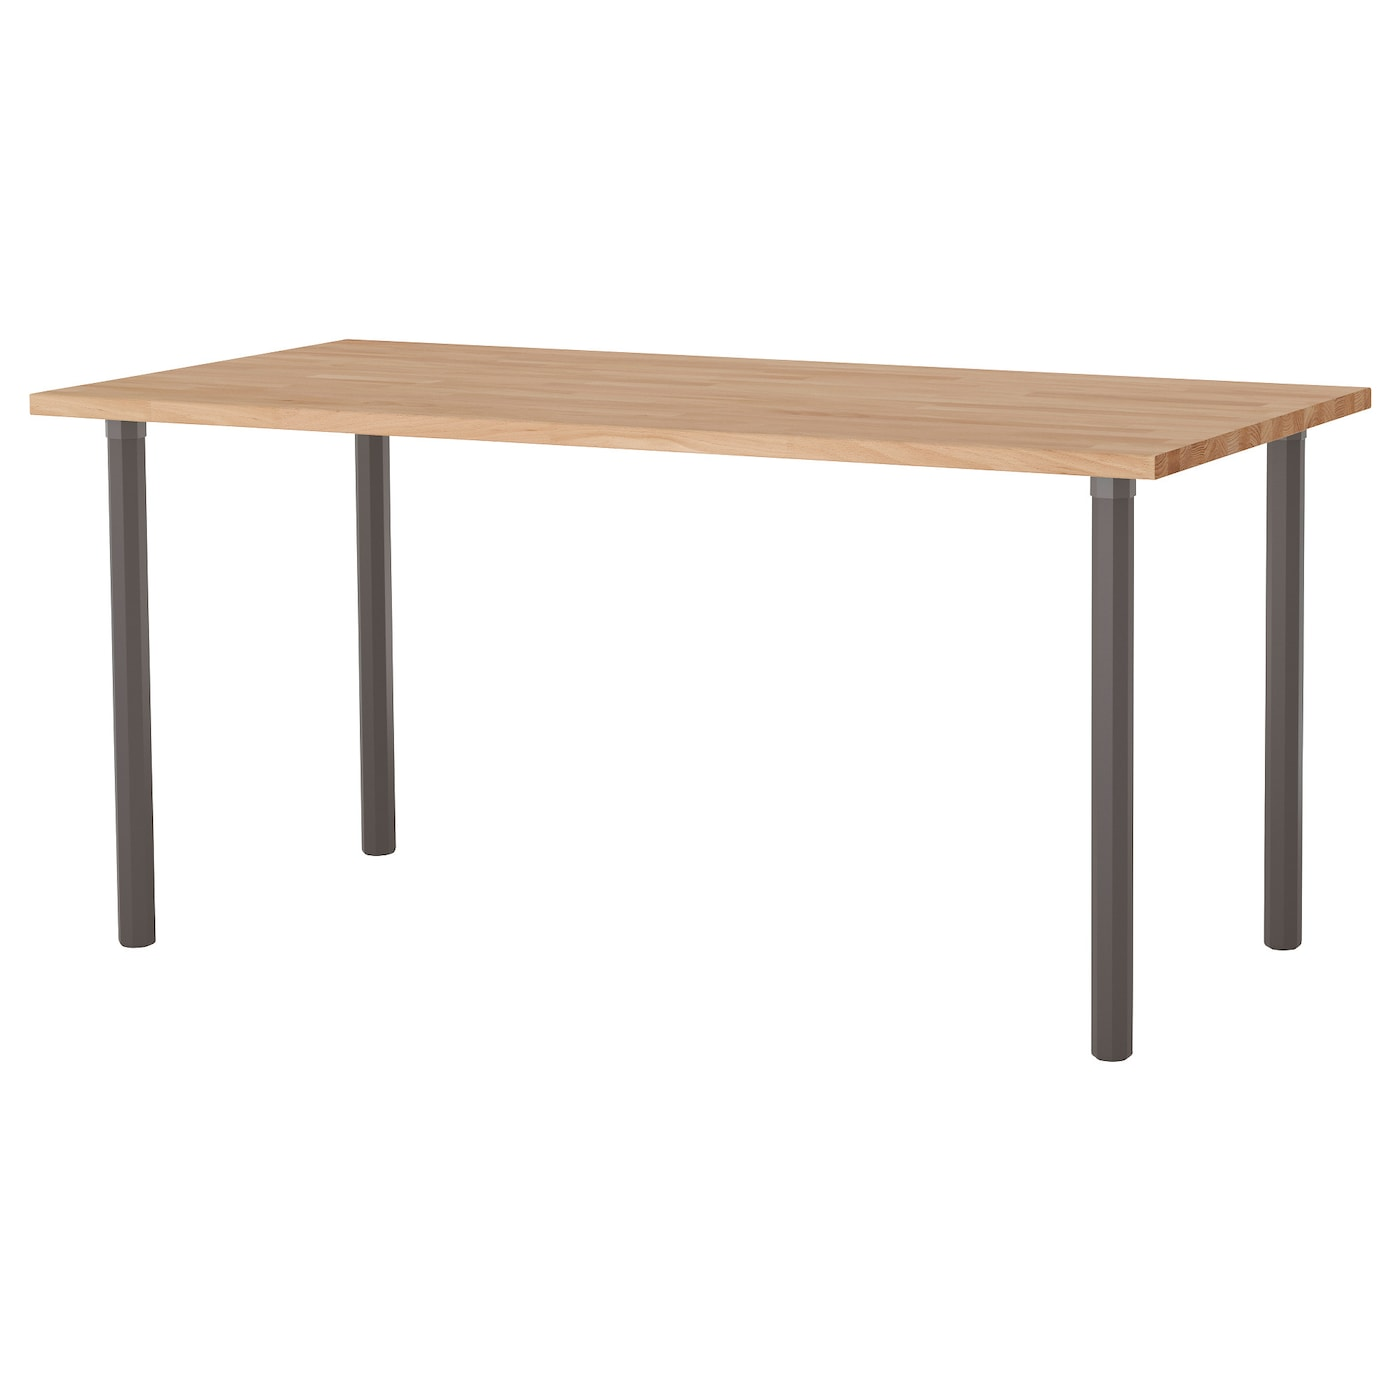 IKEA ALVARET/GERTON table